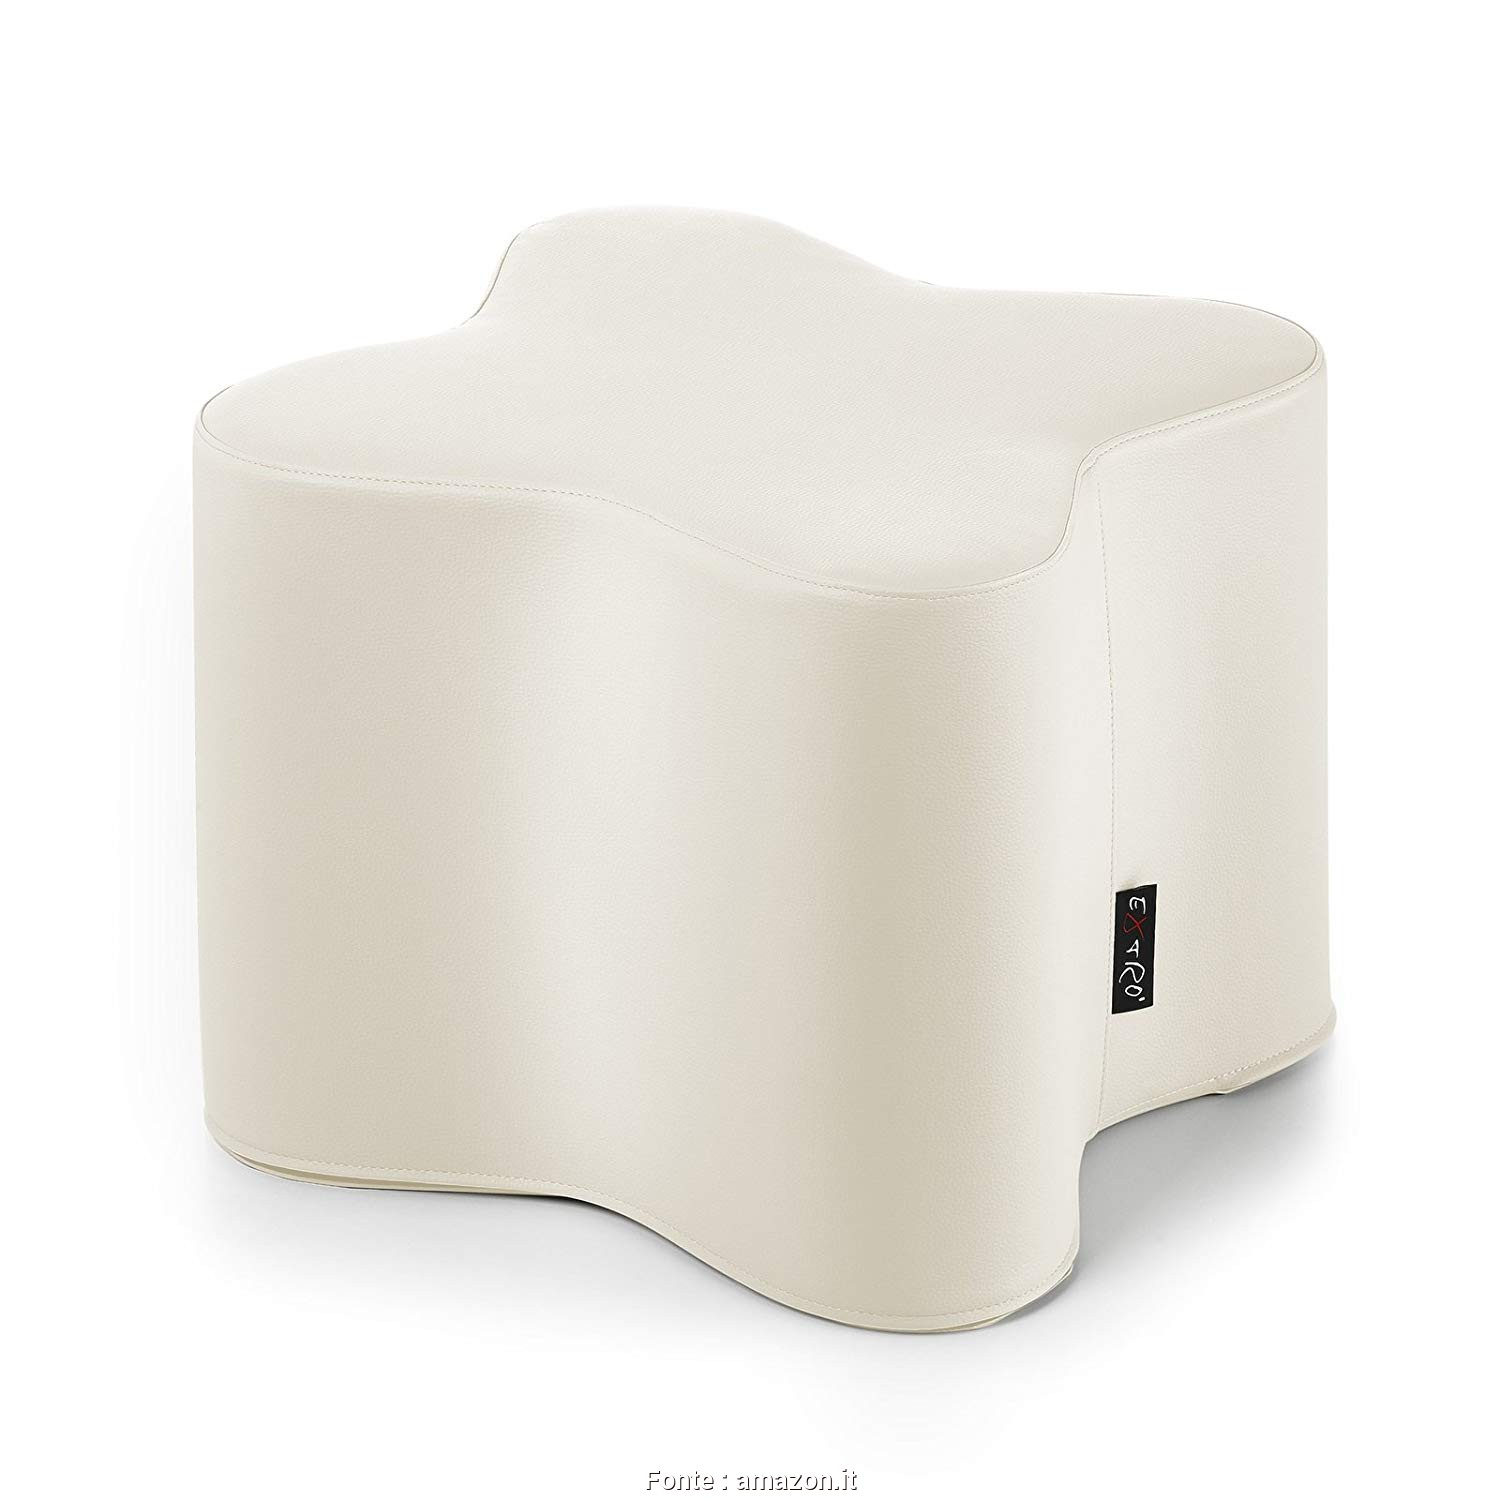 Locale 4 Pouf, Camera Da Letto Amazon - Keever For Congress